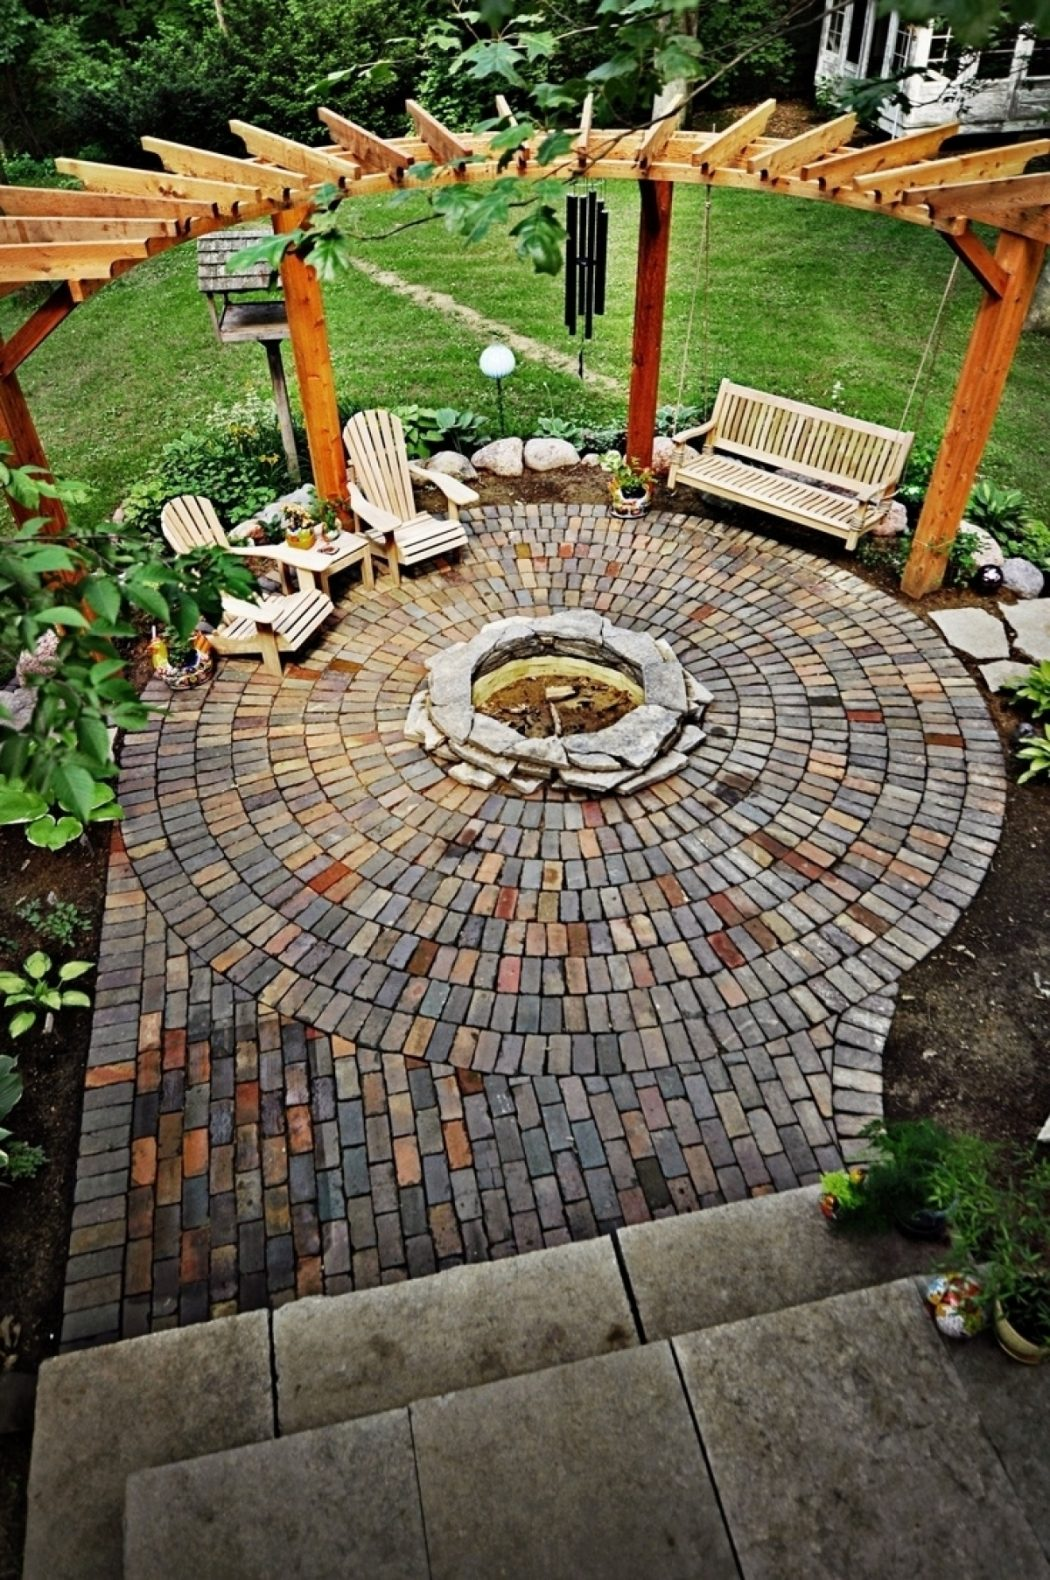 07-swinging-by-the-fire-fireplace-design-homebnc Delightful and Affordable Fire pit Decoration Designs in 2017